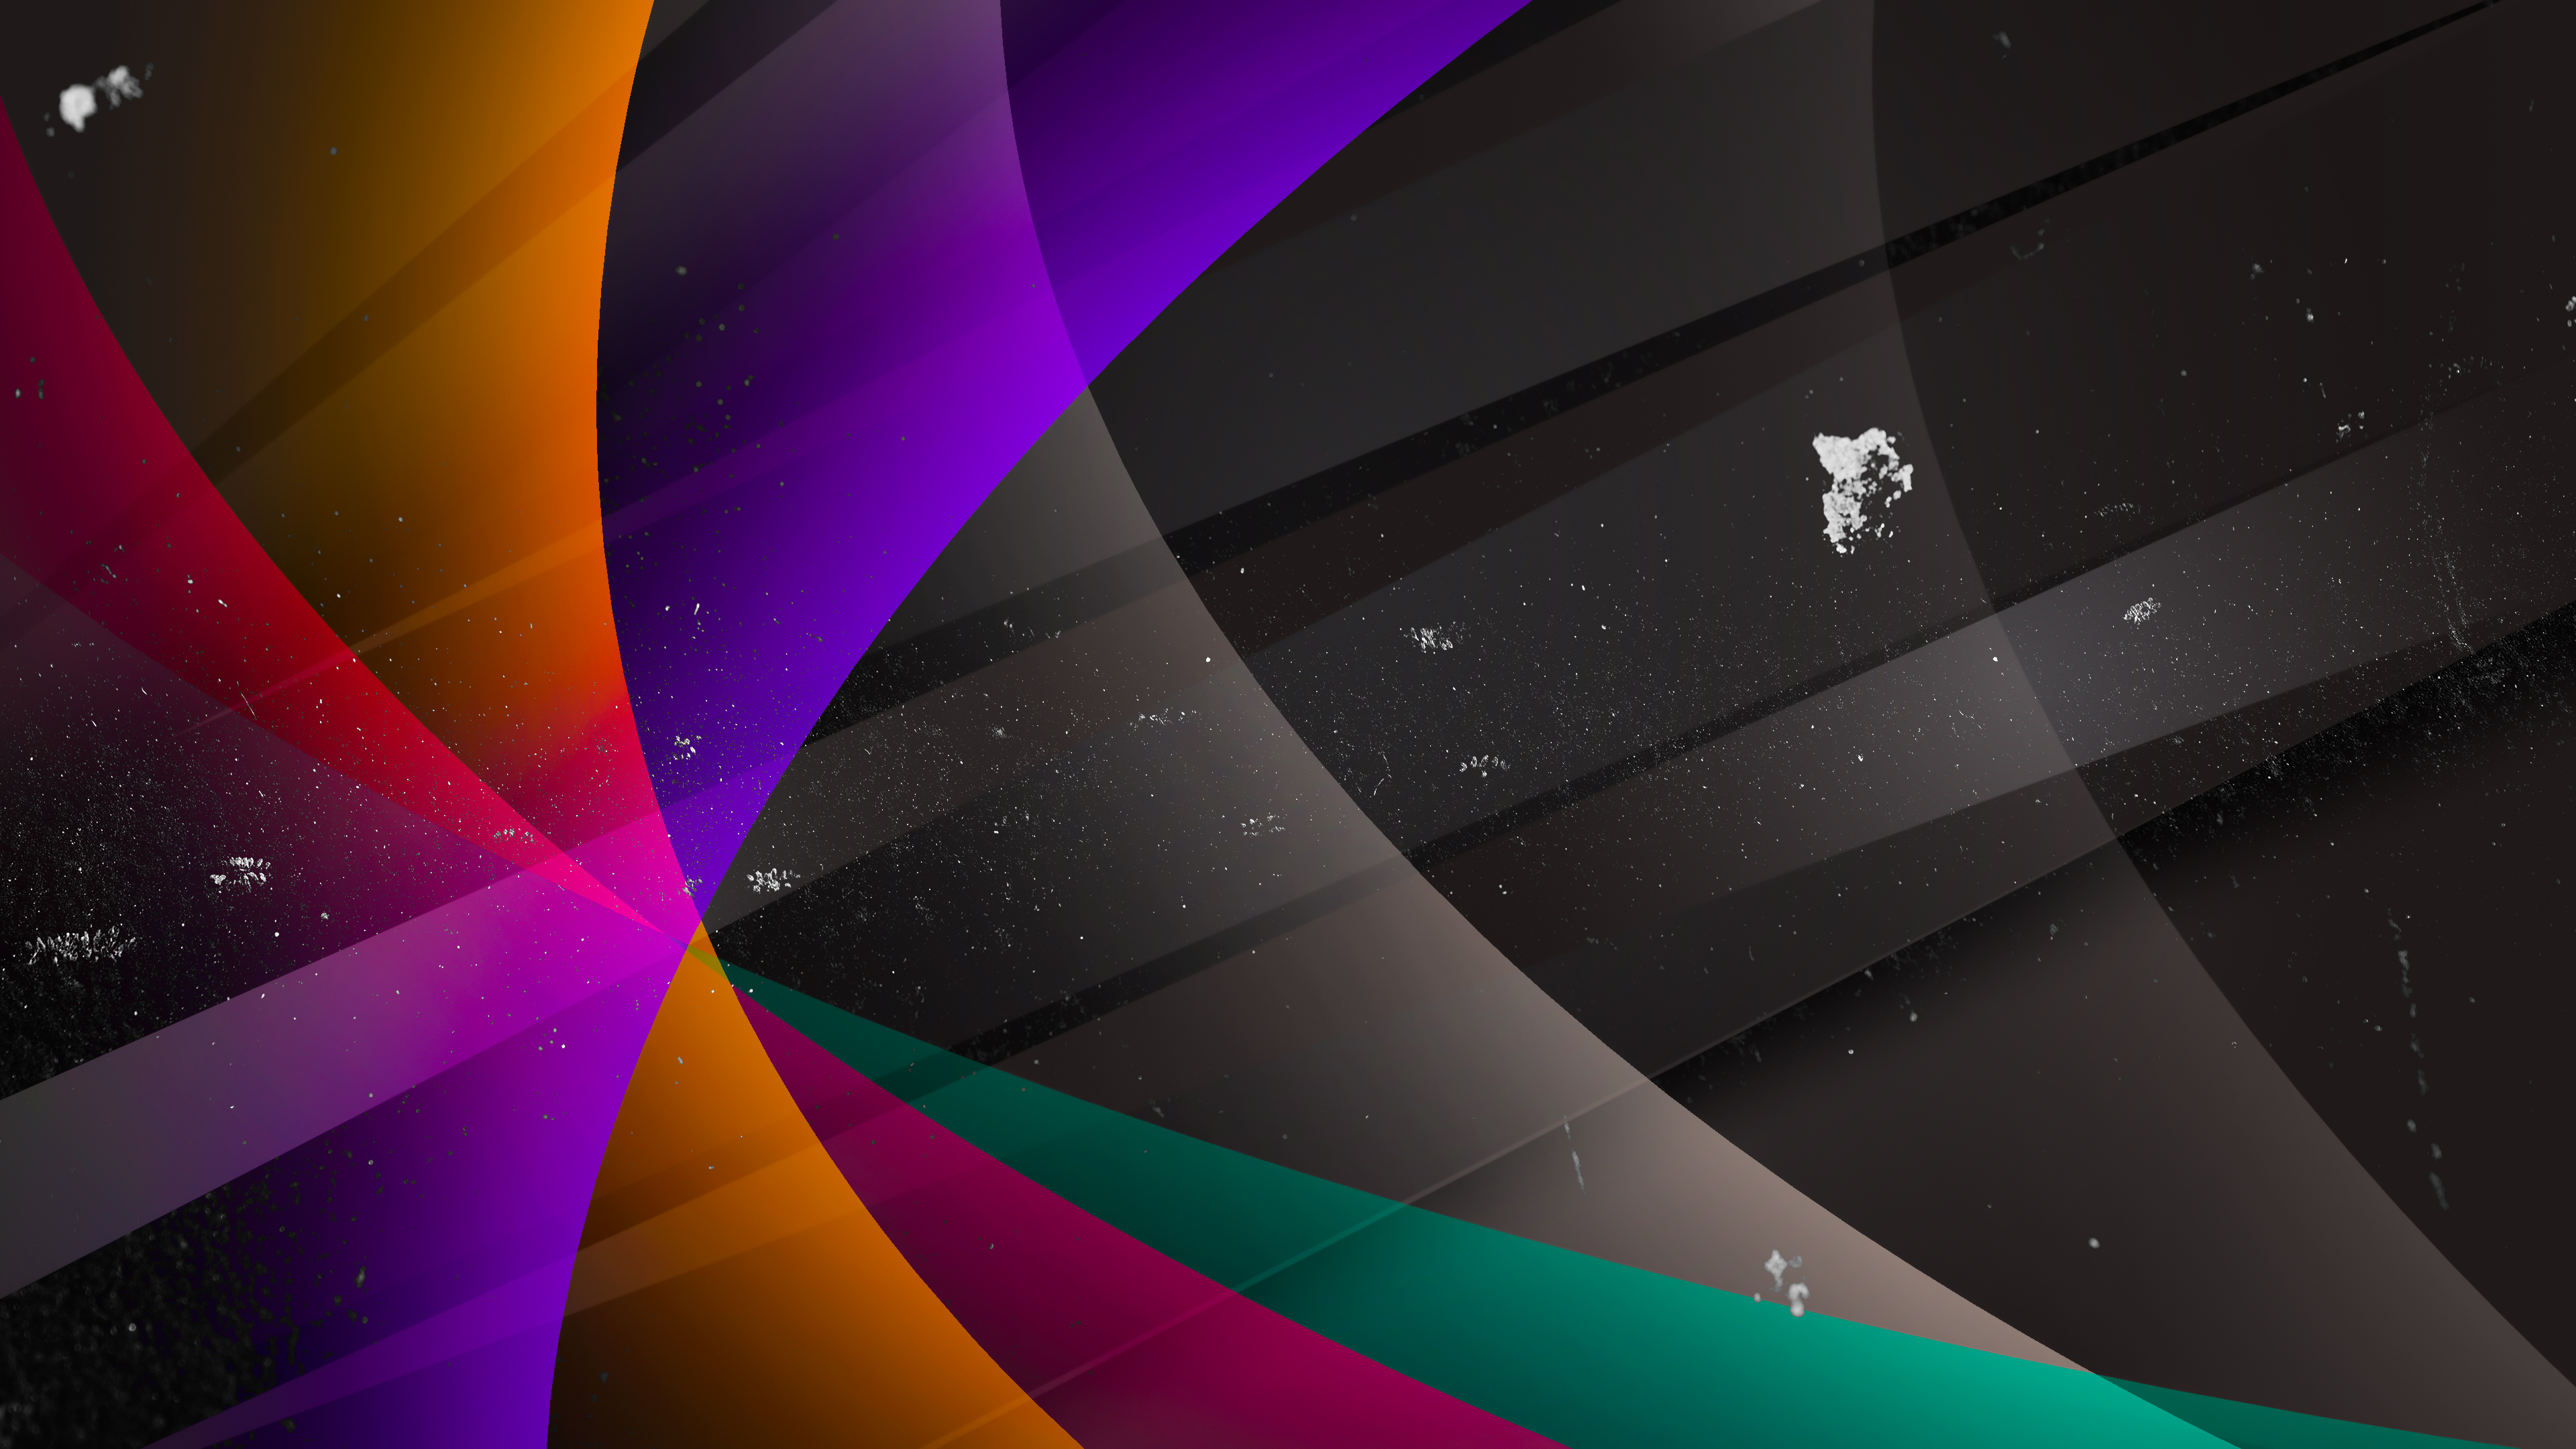 space of abstract 4k 4t